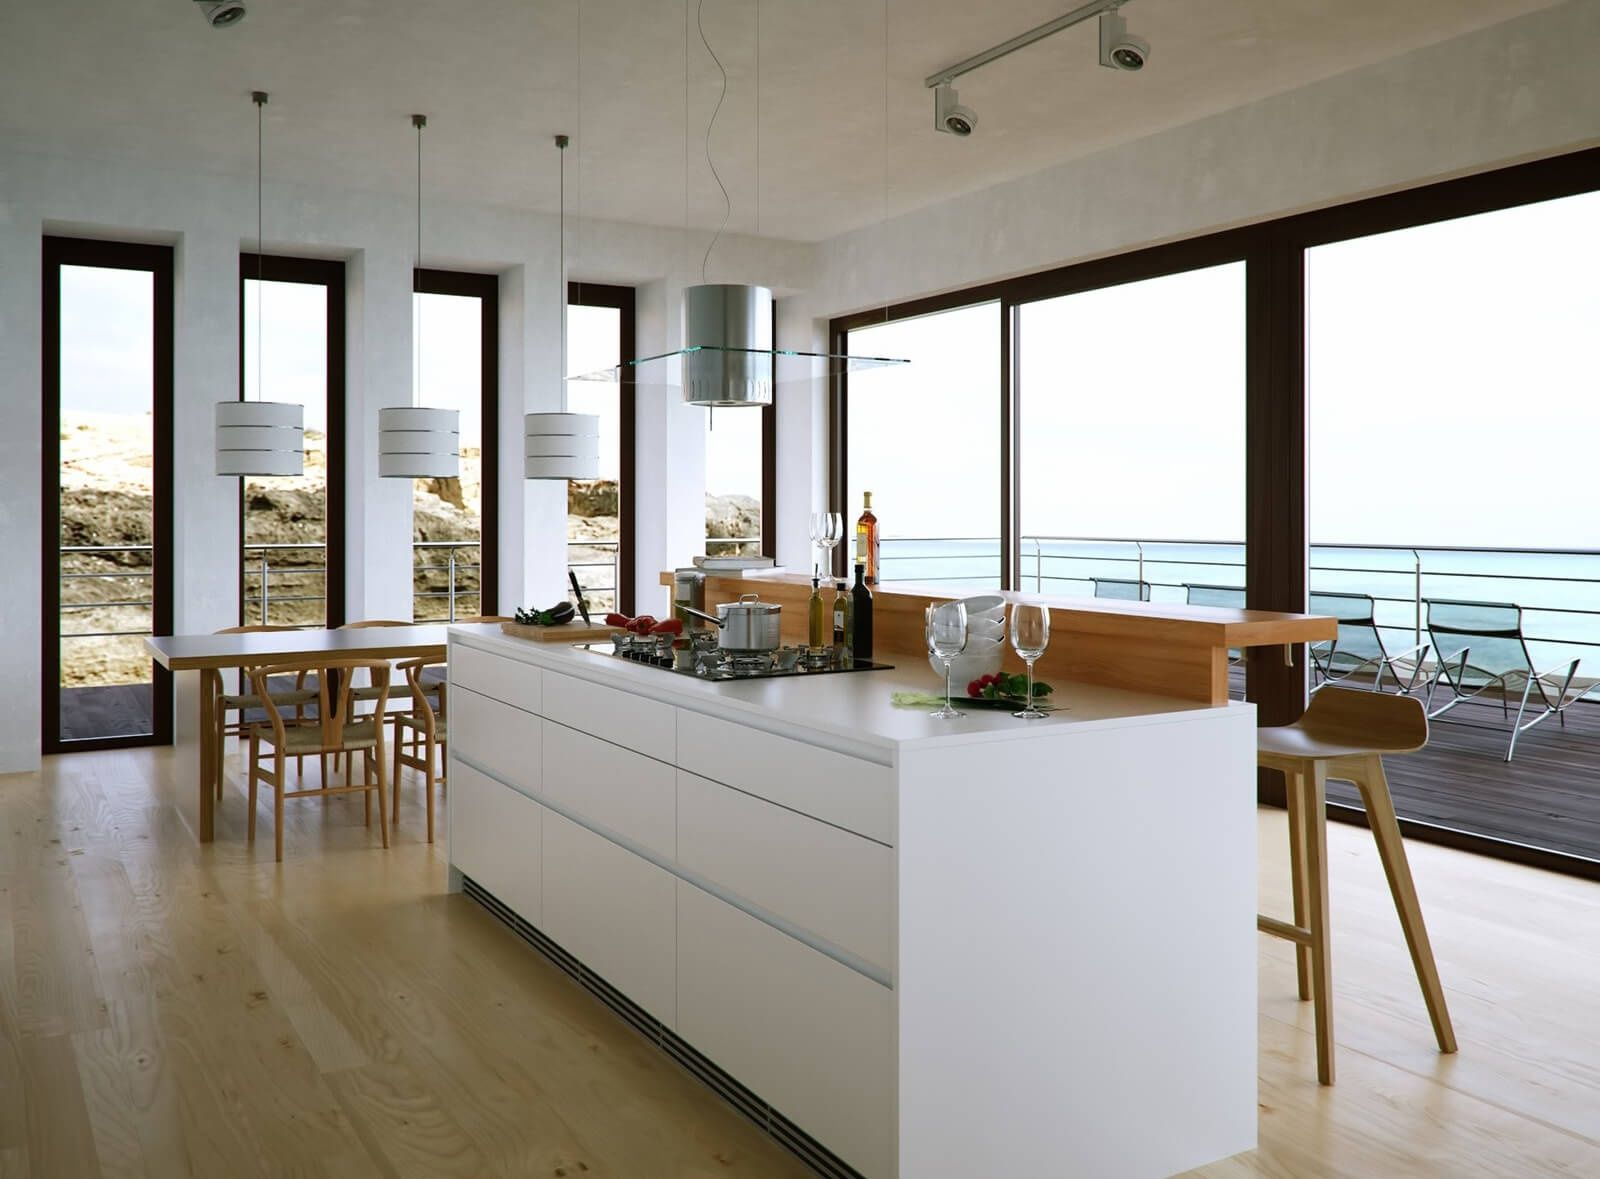 Kitchen in Living Room with Bar Counter. Original Interior Ideas. Open layout with bay panoramic window